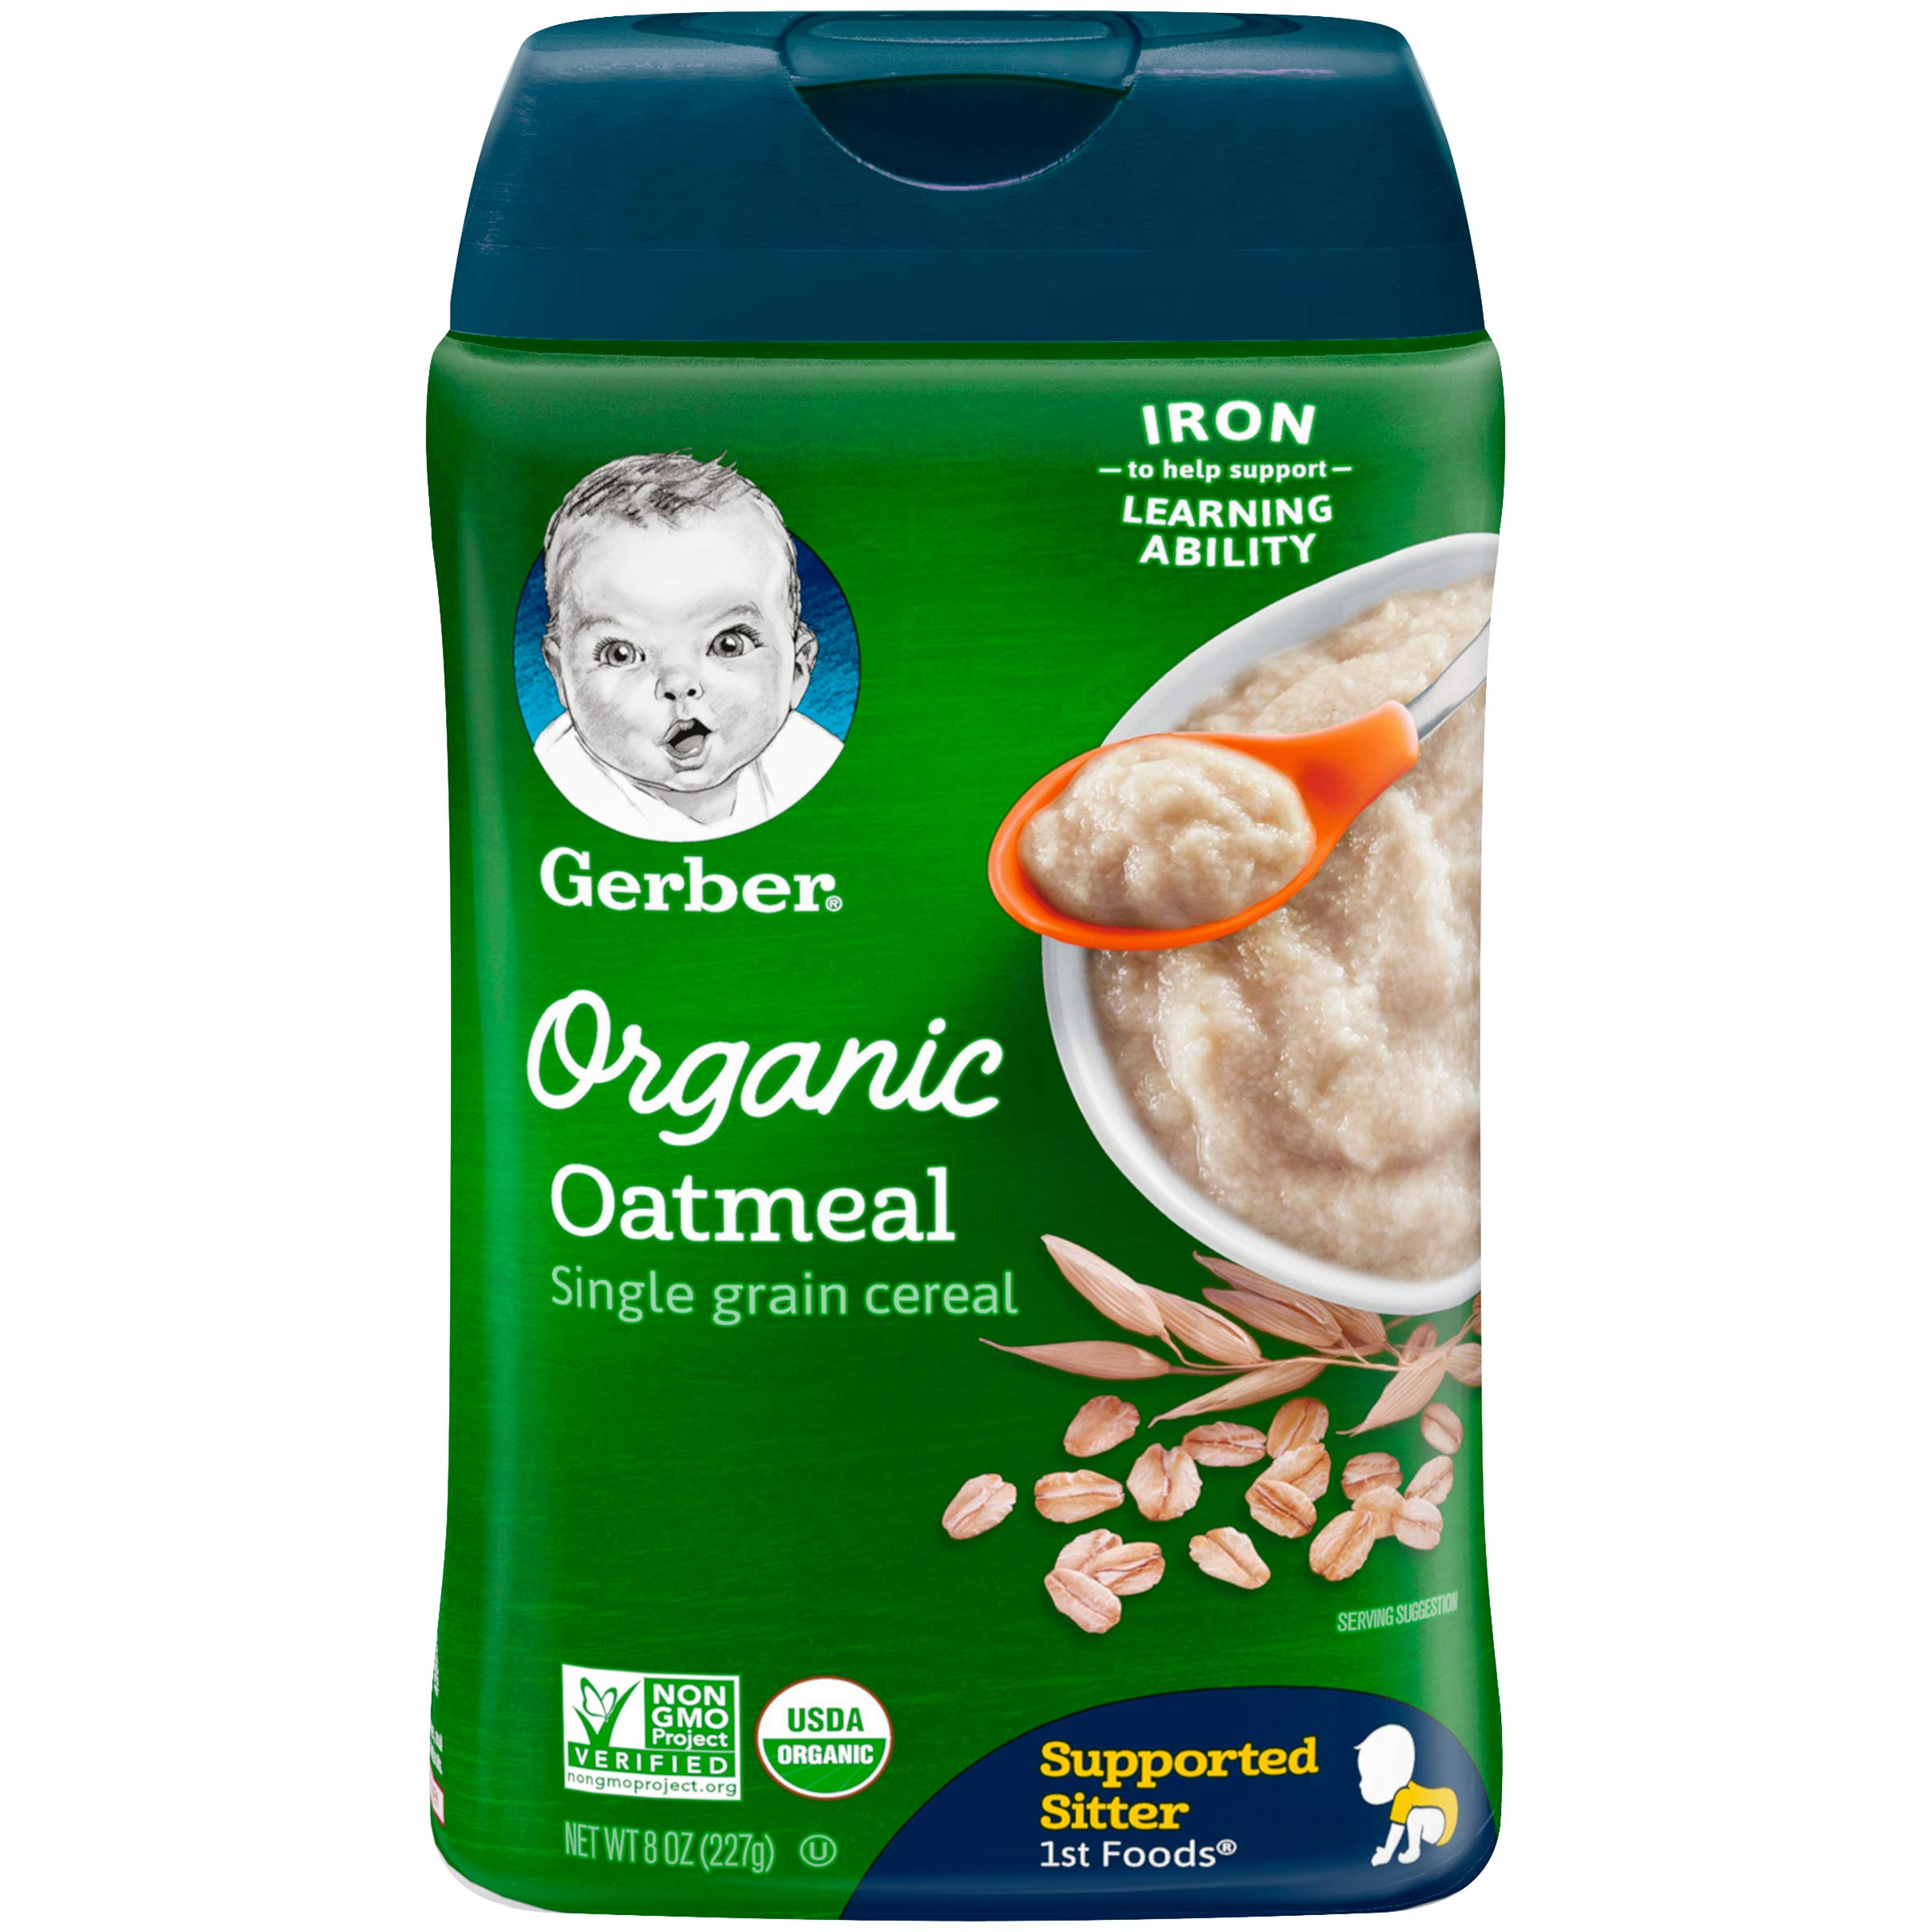 Gerber Organic Single-Grain Oatmeal Baby Cereal, 8 Ounces (Pack of 6) by GERBER